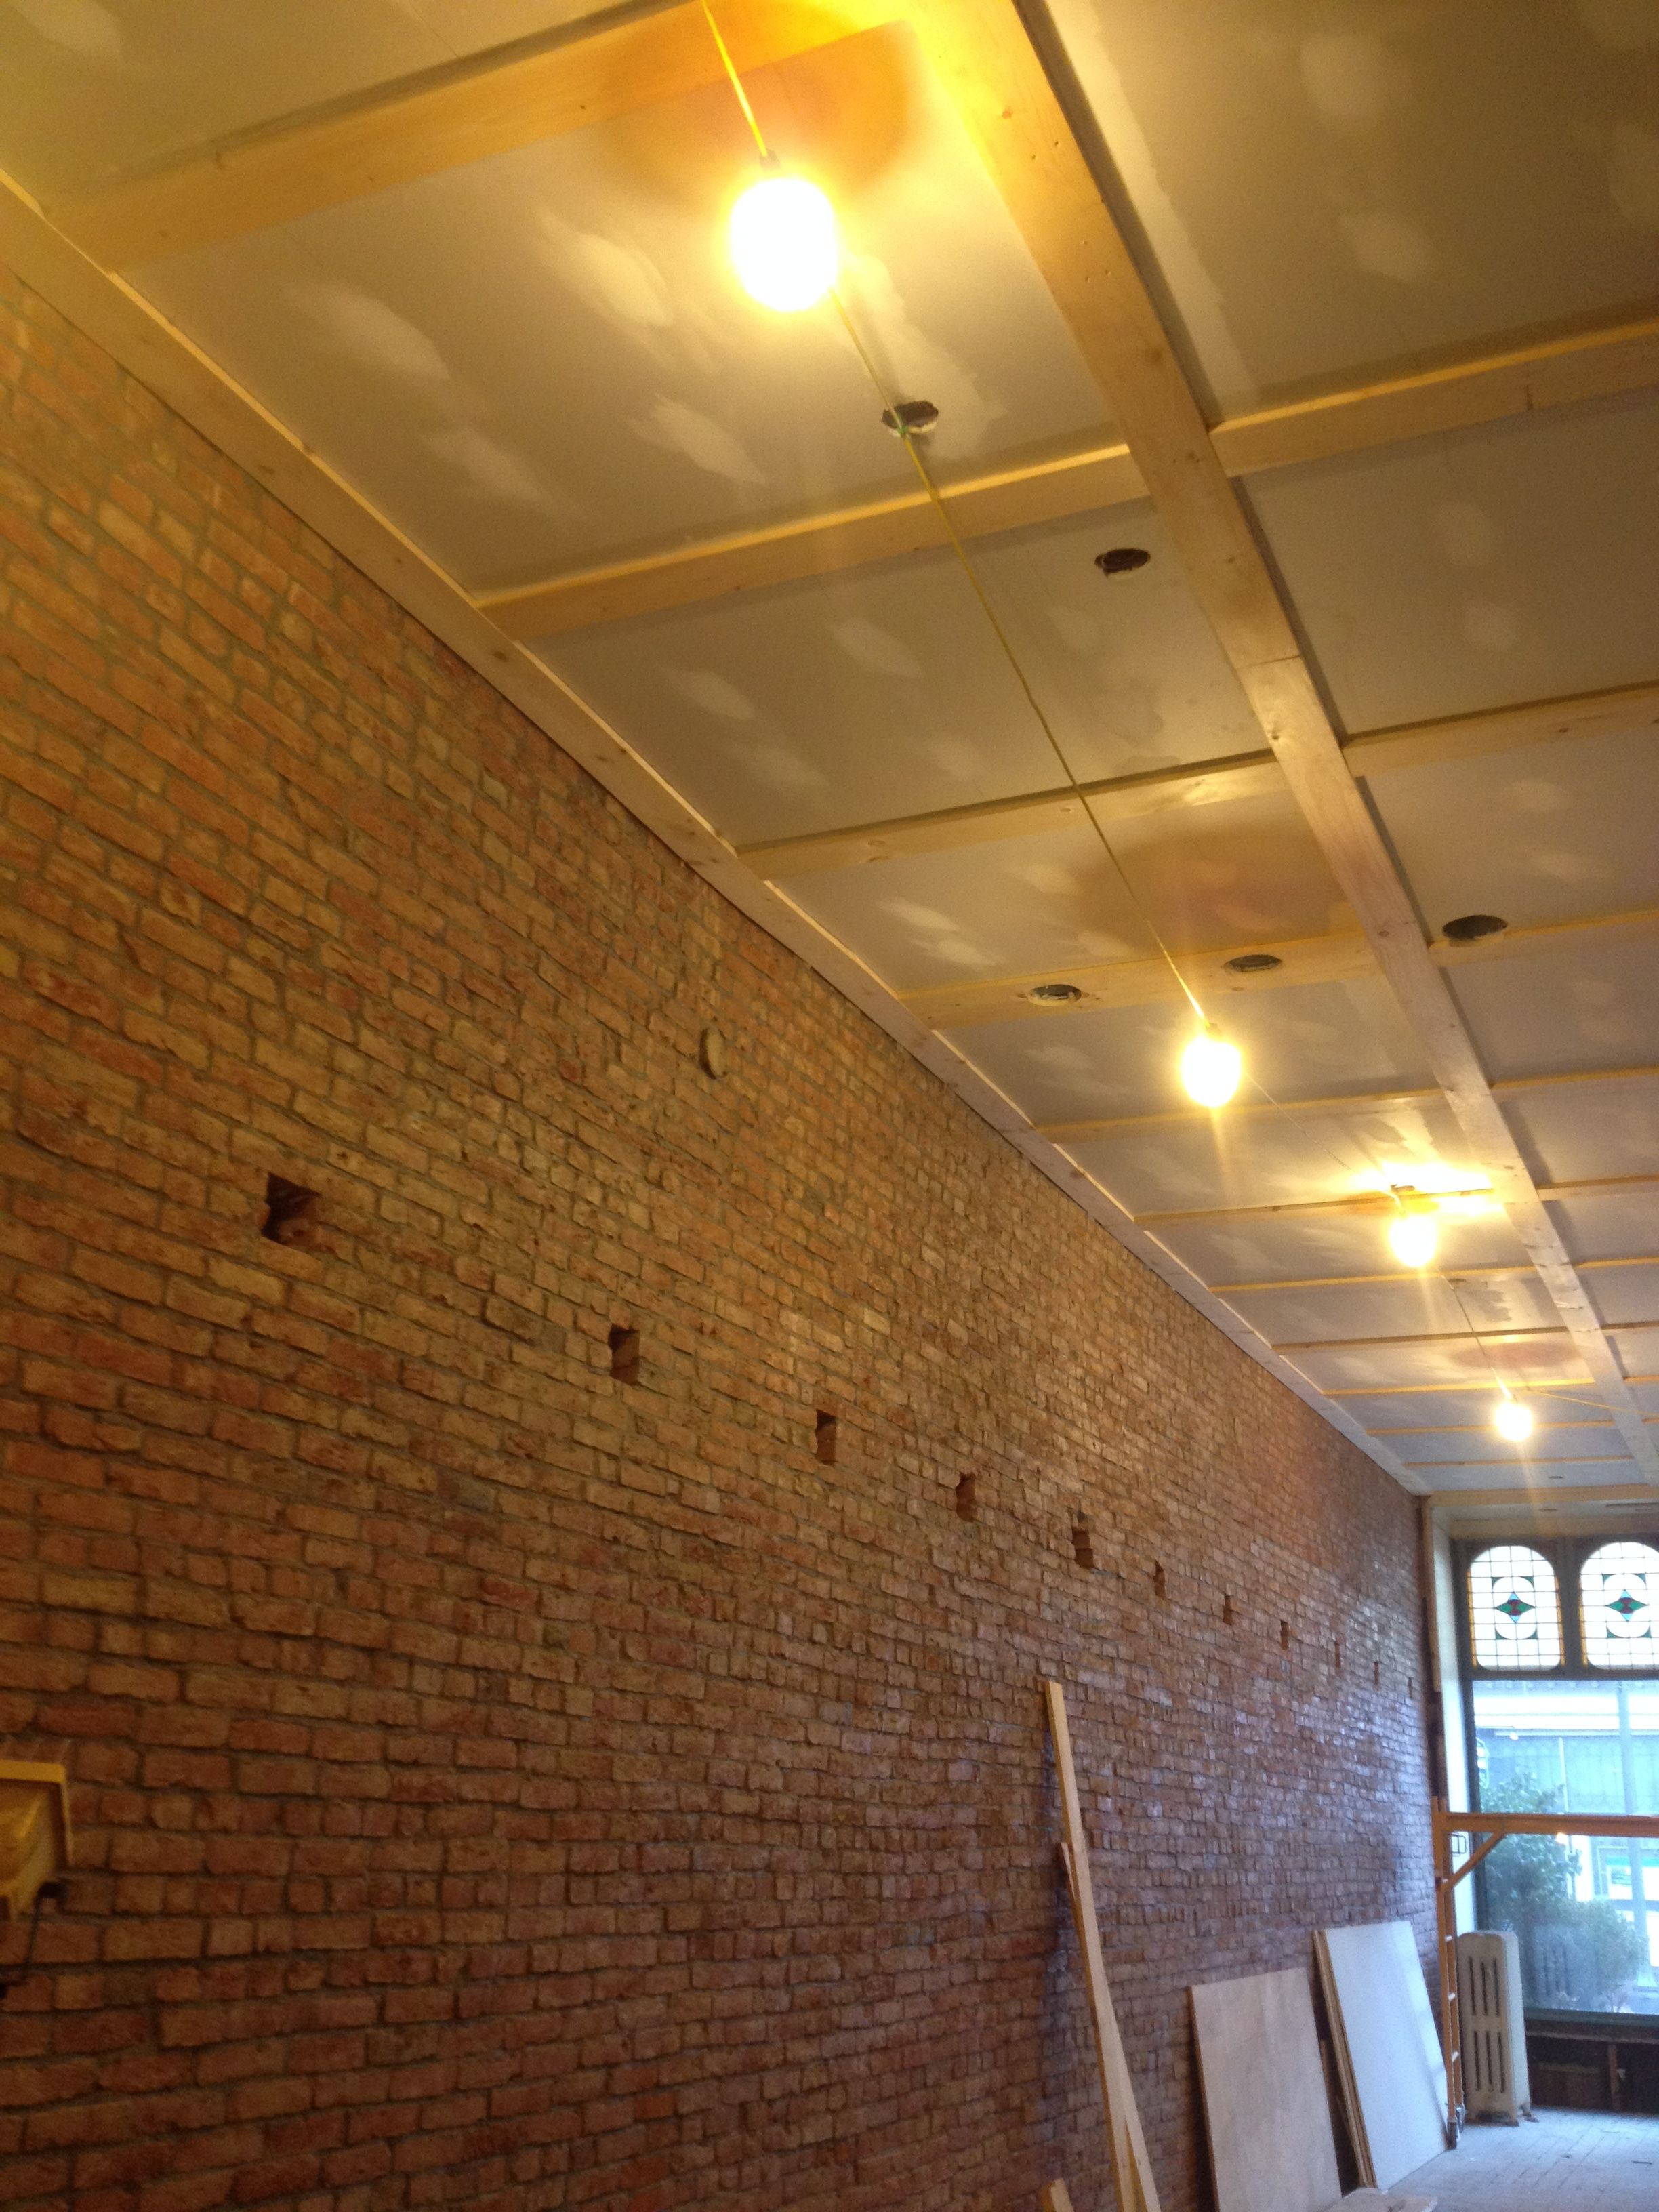 Nov 12th Ceiling Drywall And Wood Trim Hung Prepped Temporary Lighting